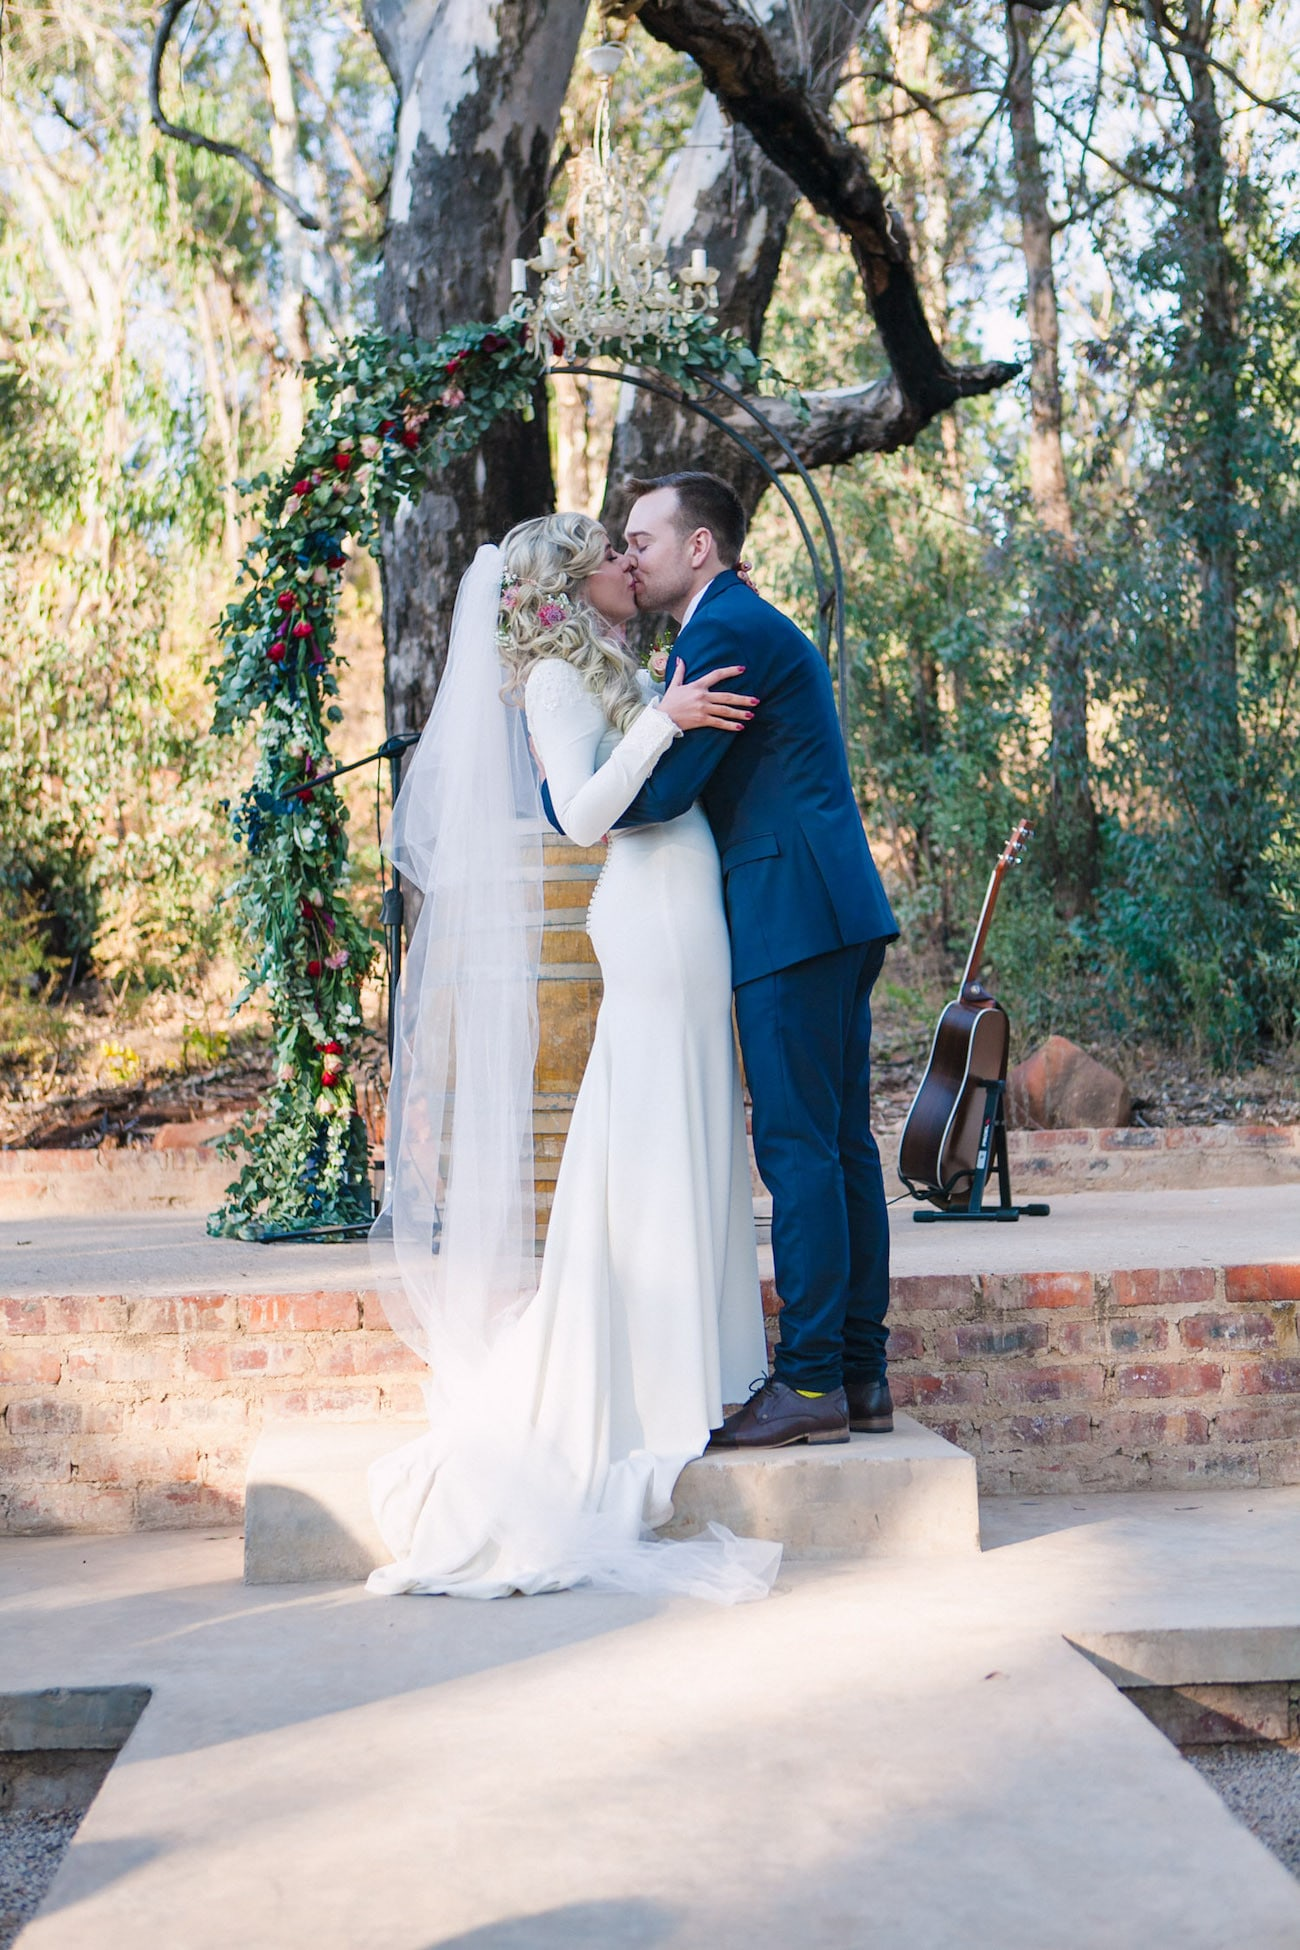 Forest Ceremony with Floral Arch | Joyous Jewel Tone Winter Wedding | Credit: Dust and Dreams Photography